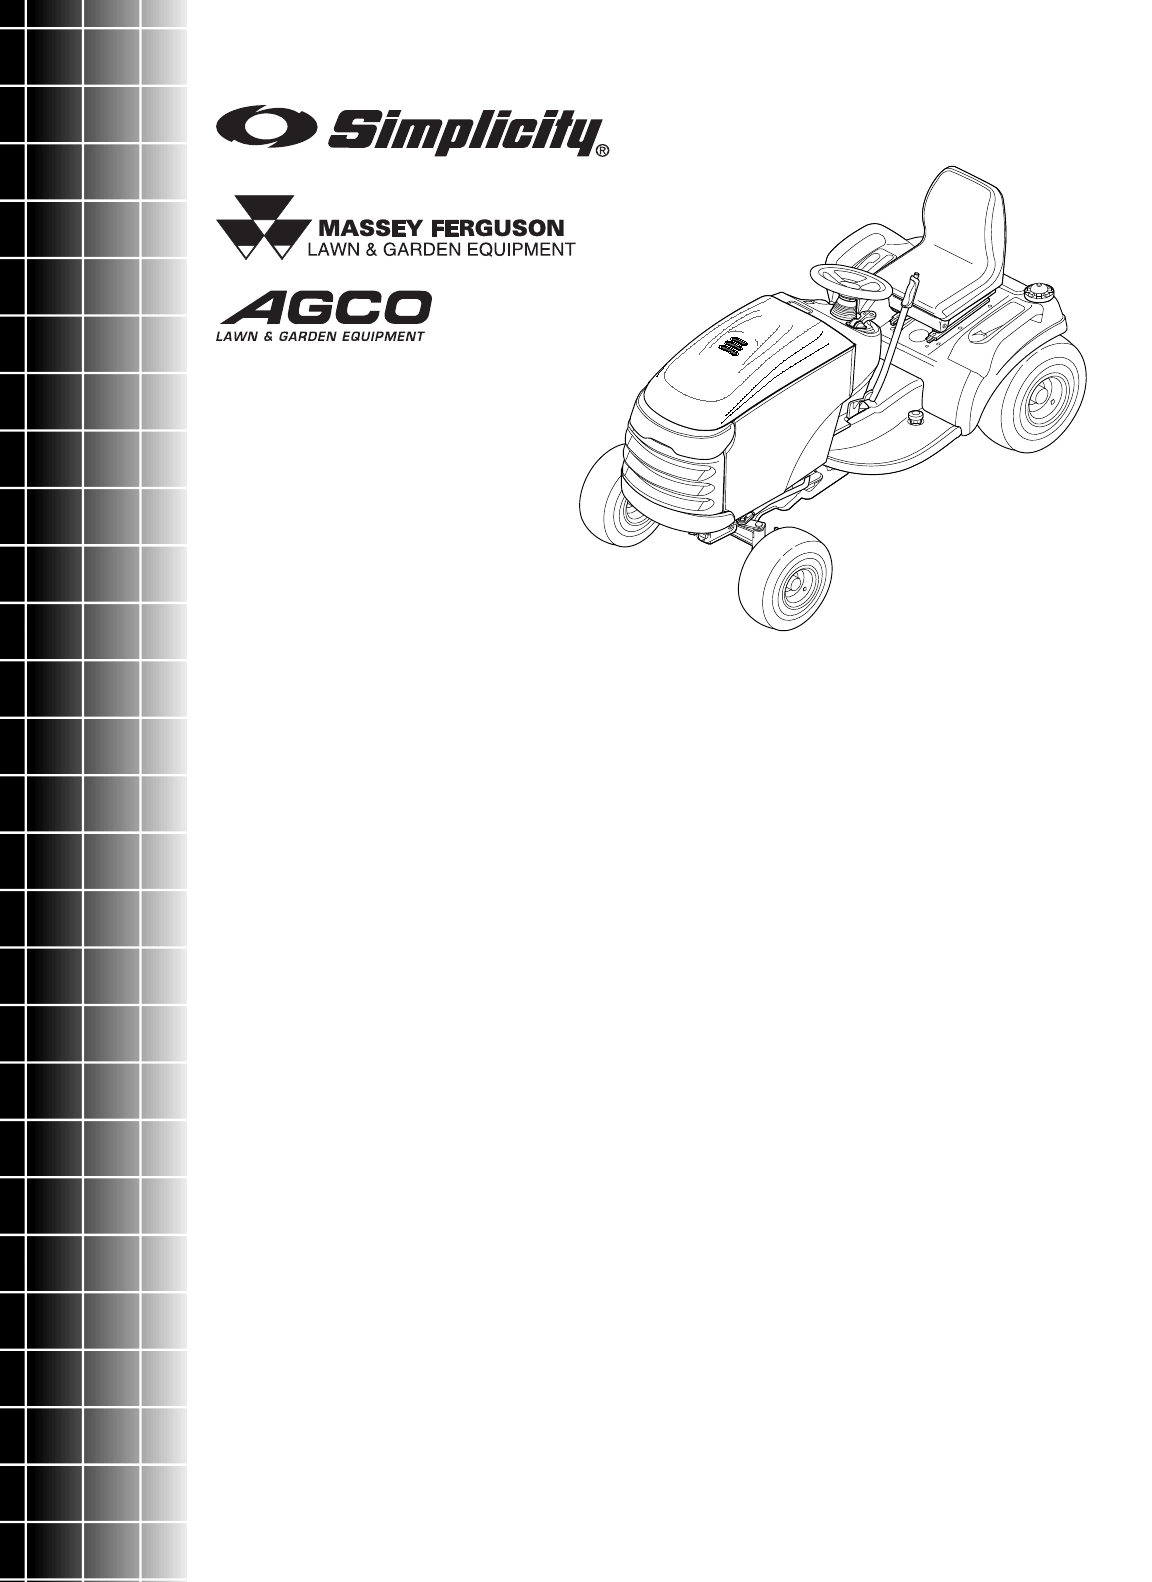 Simplicity Lawn Mower Conquest / 2700 User Guide